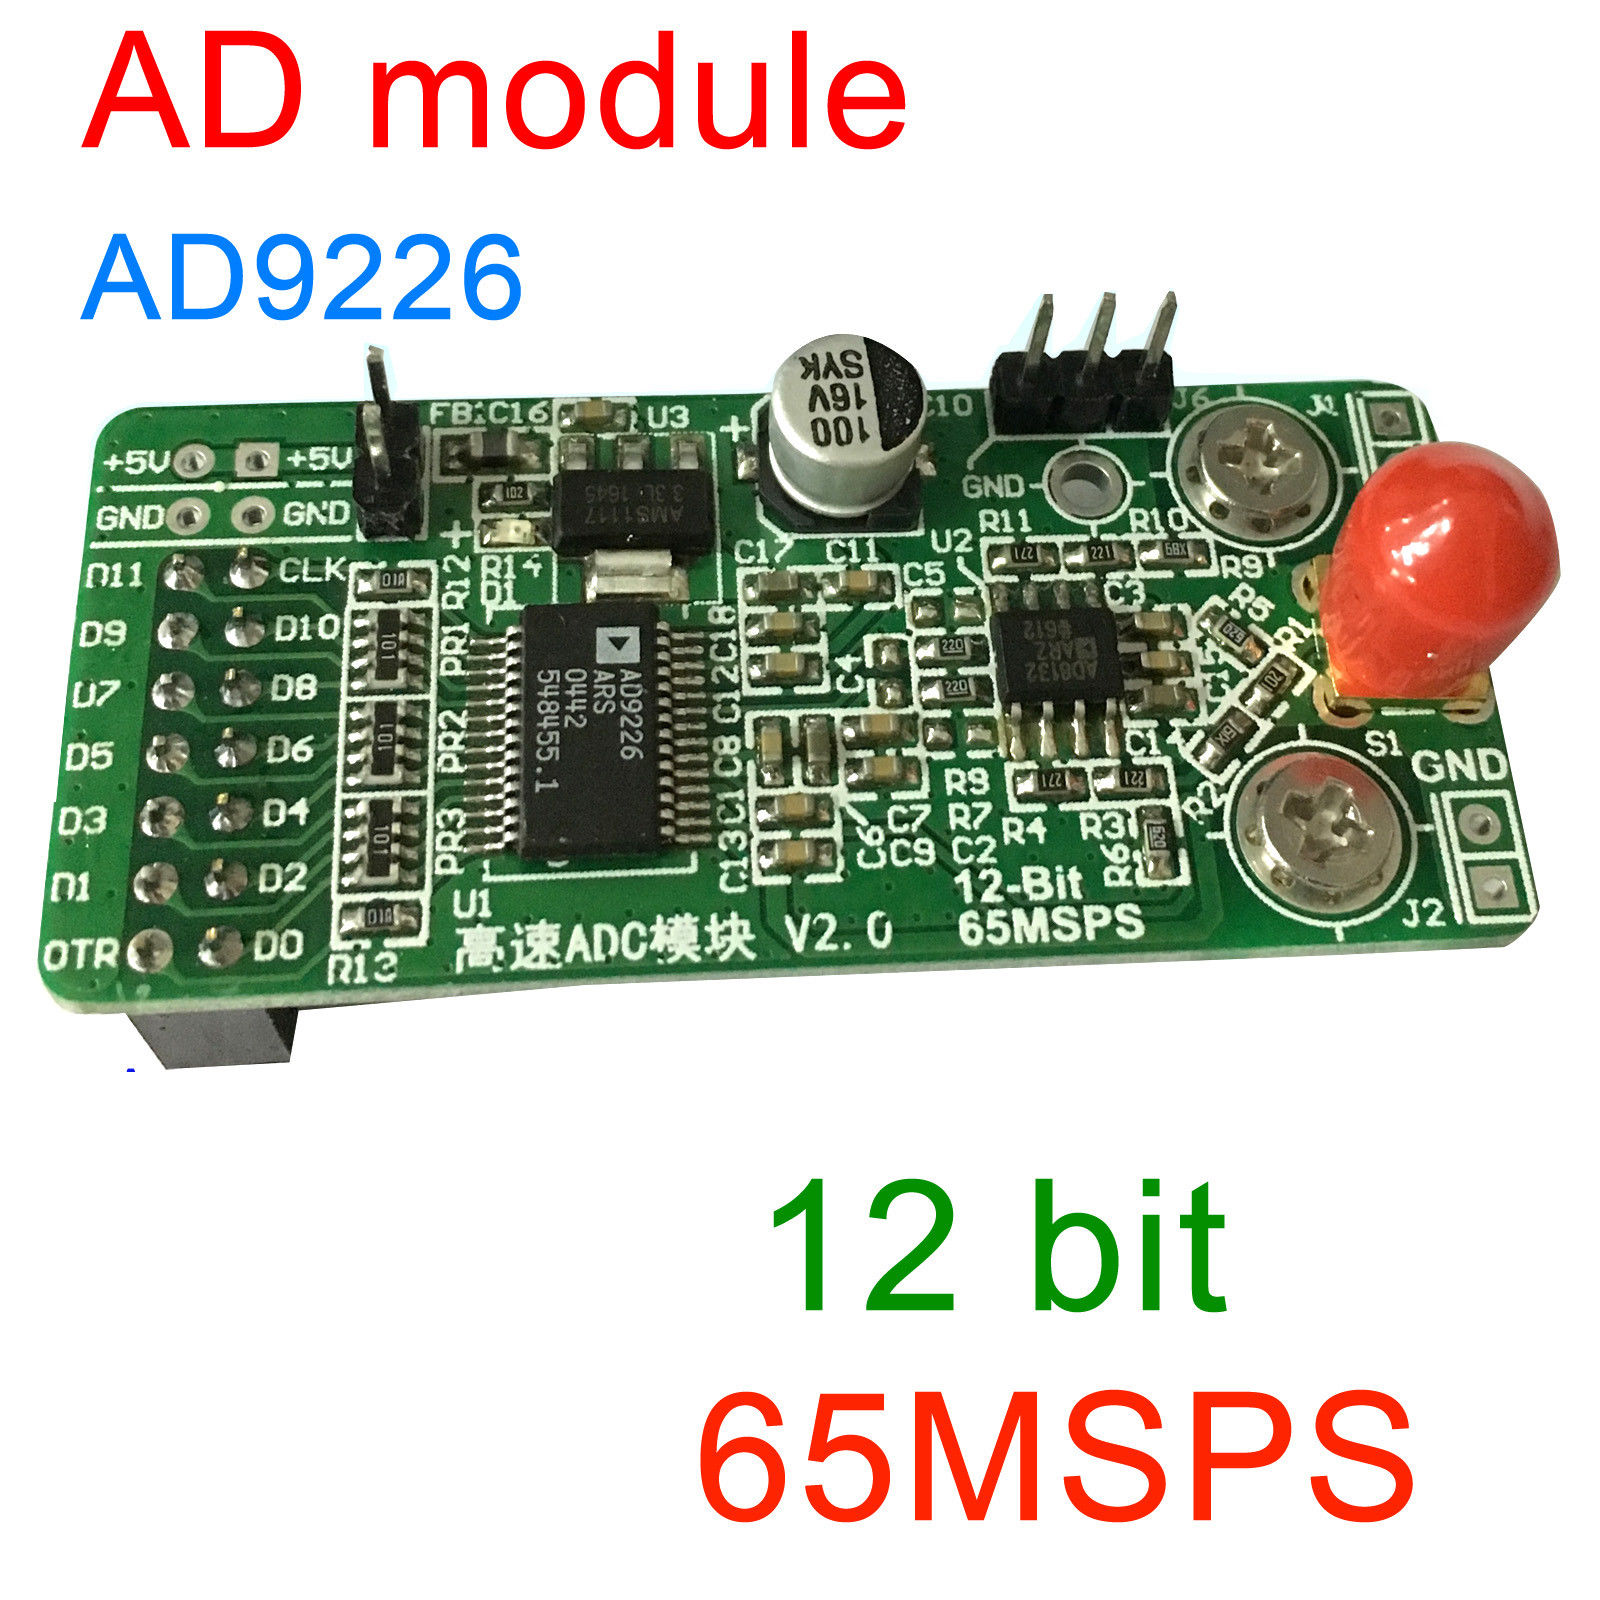 High-Speed AD Module AD9226 MSPS ADC 12bit FPGA Development Board Expansion 65MSPS Data Acquisition